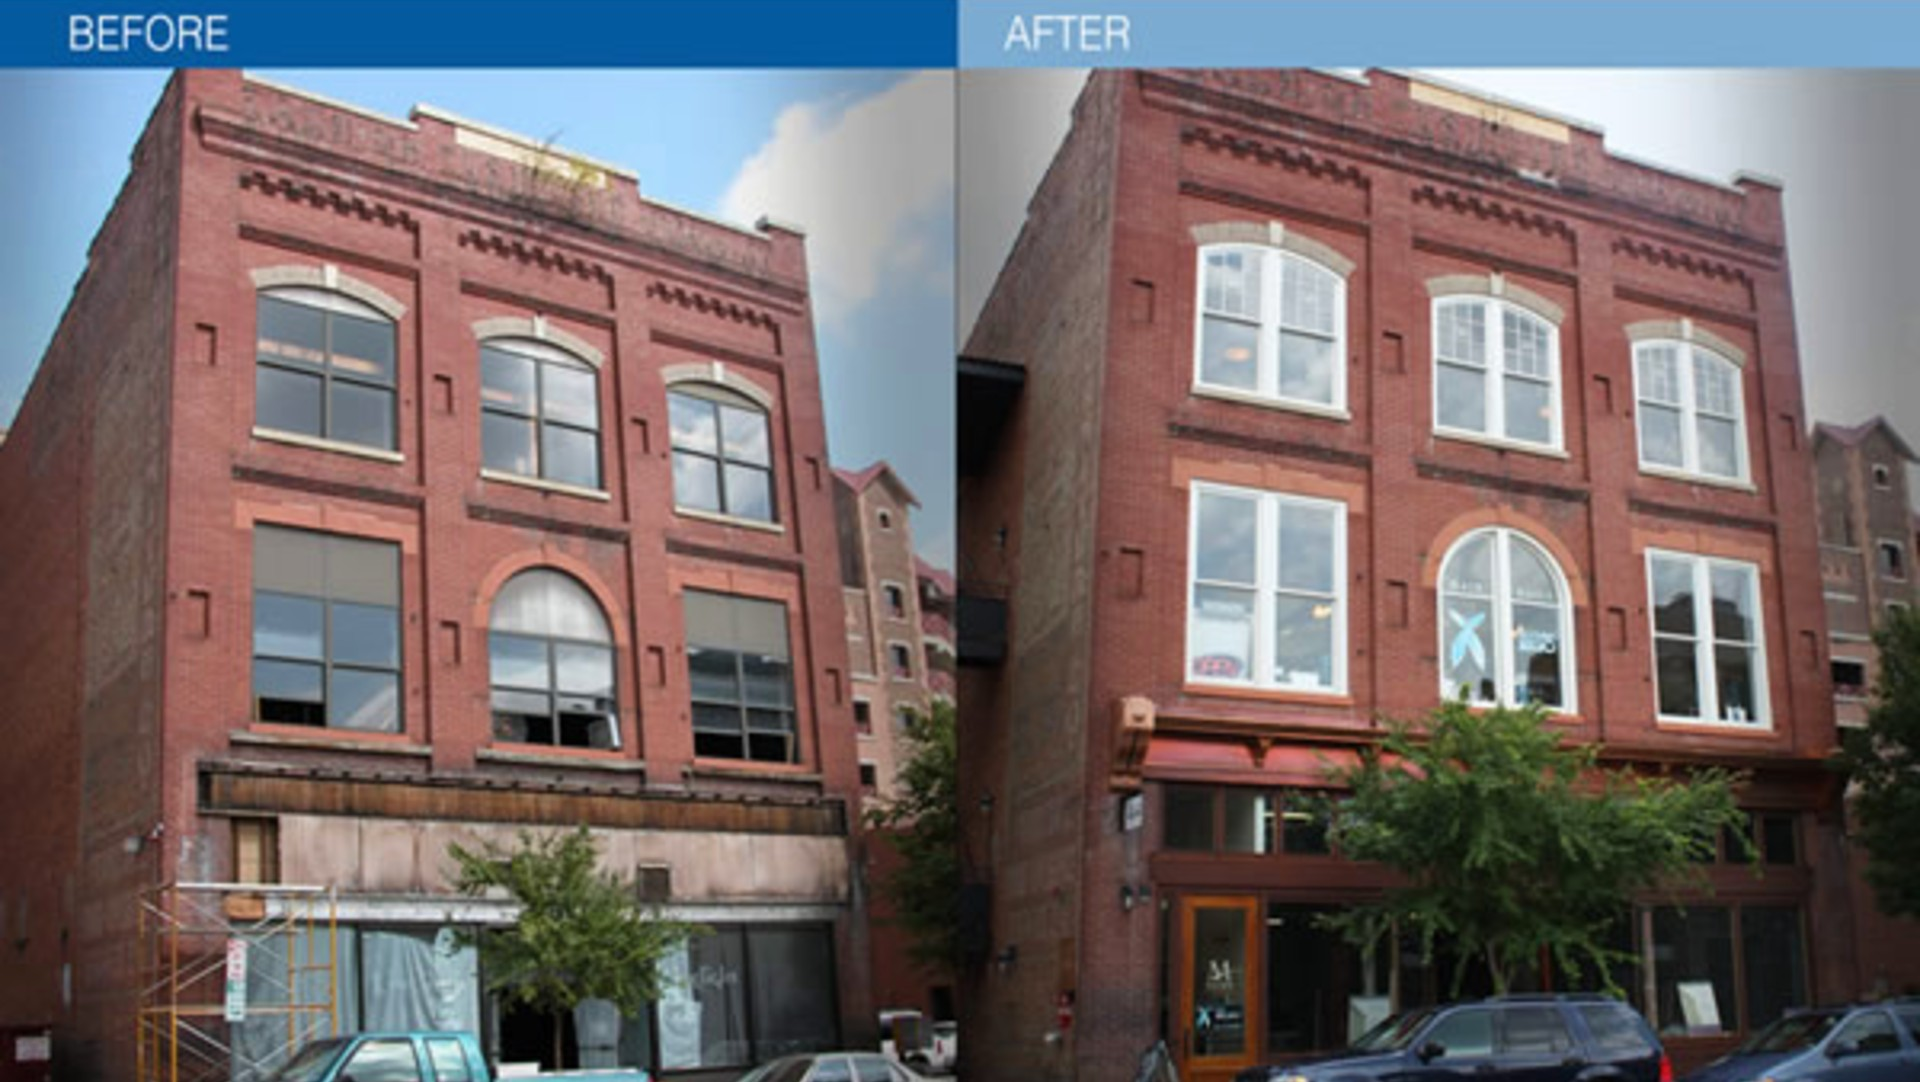 brick facade before and after hargett street